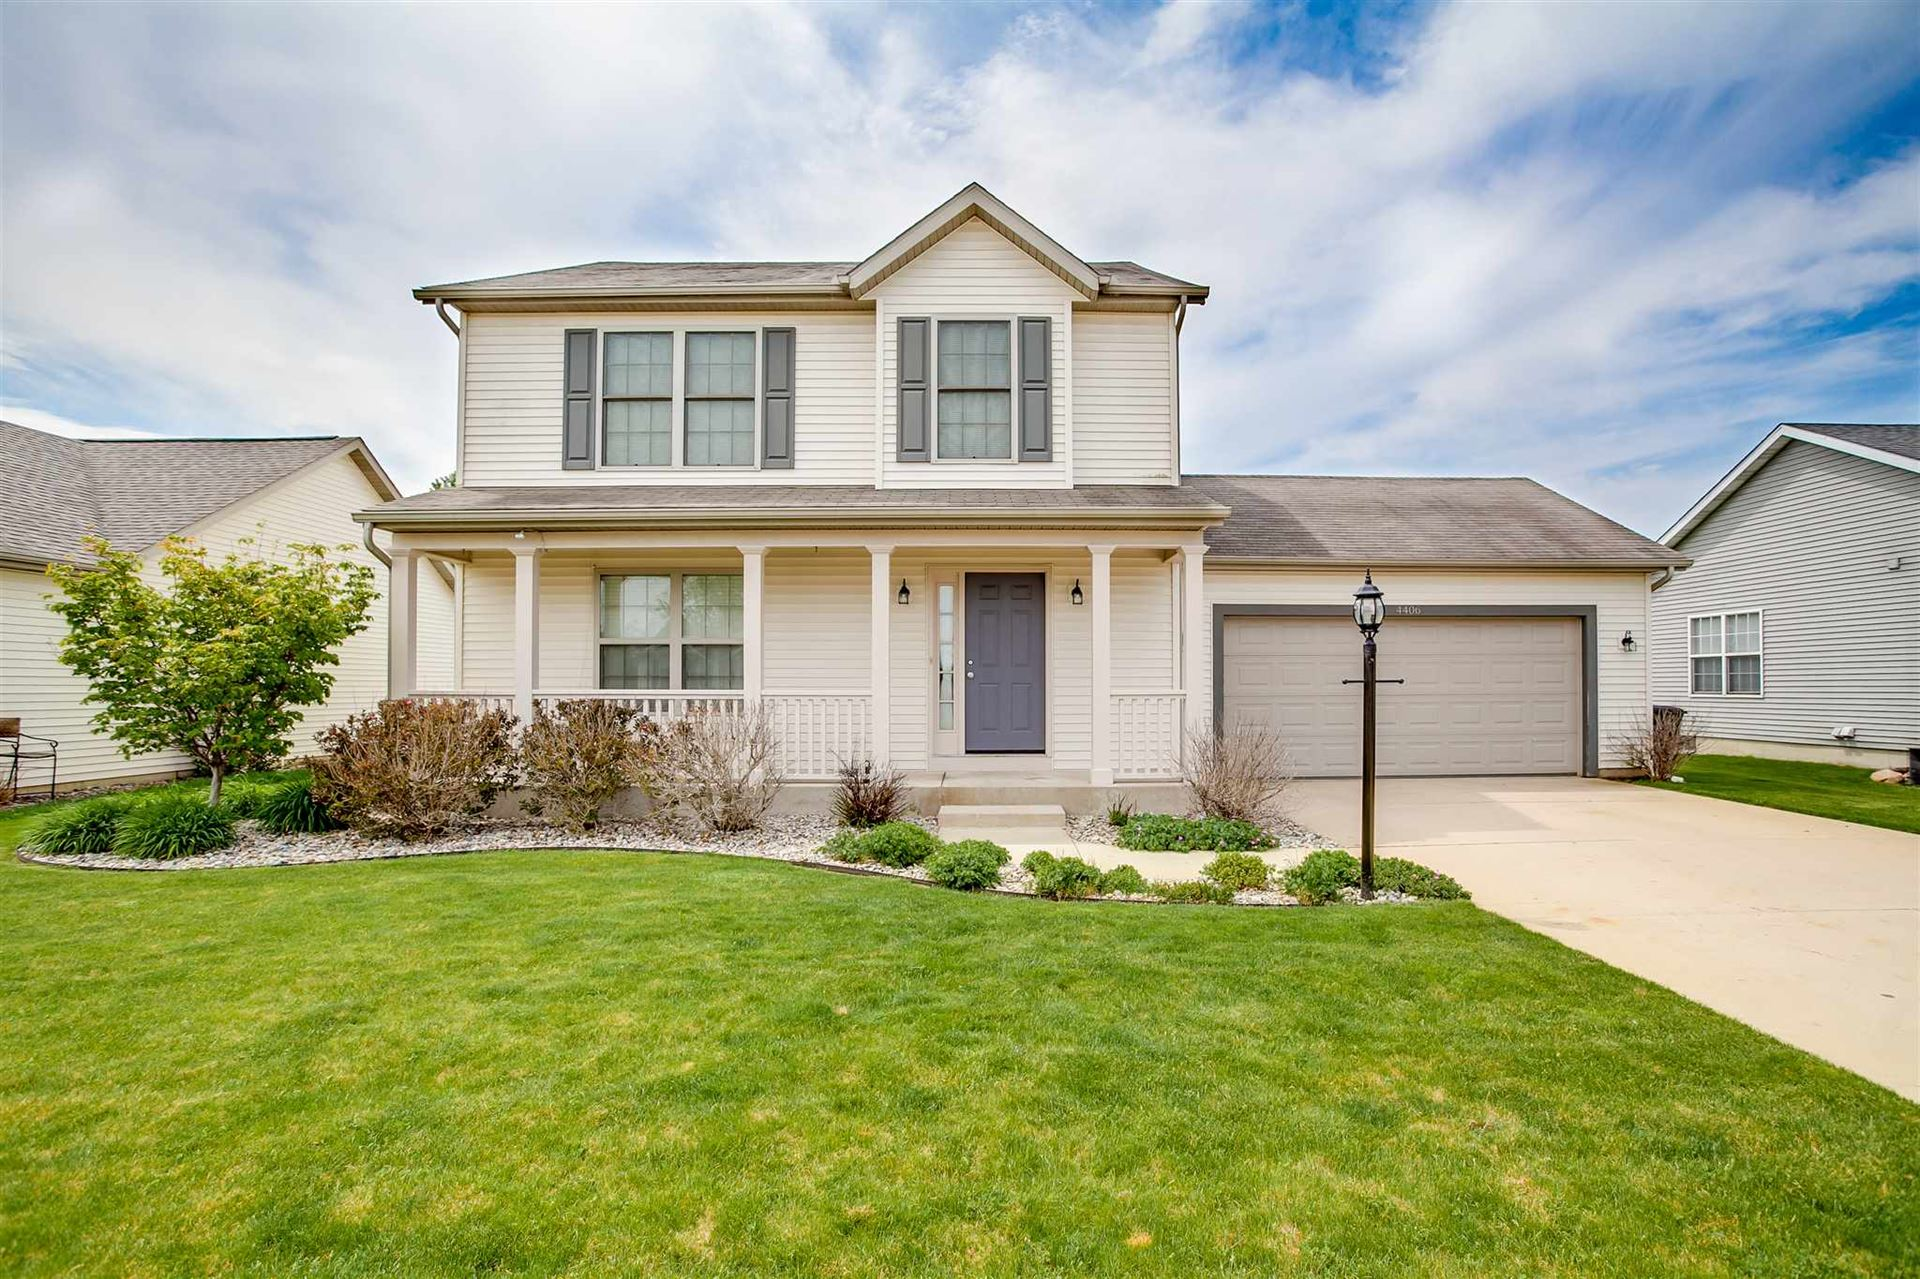 4406 Ashard Drive, South Bend, IN 46628 - #: 202020311